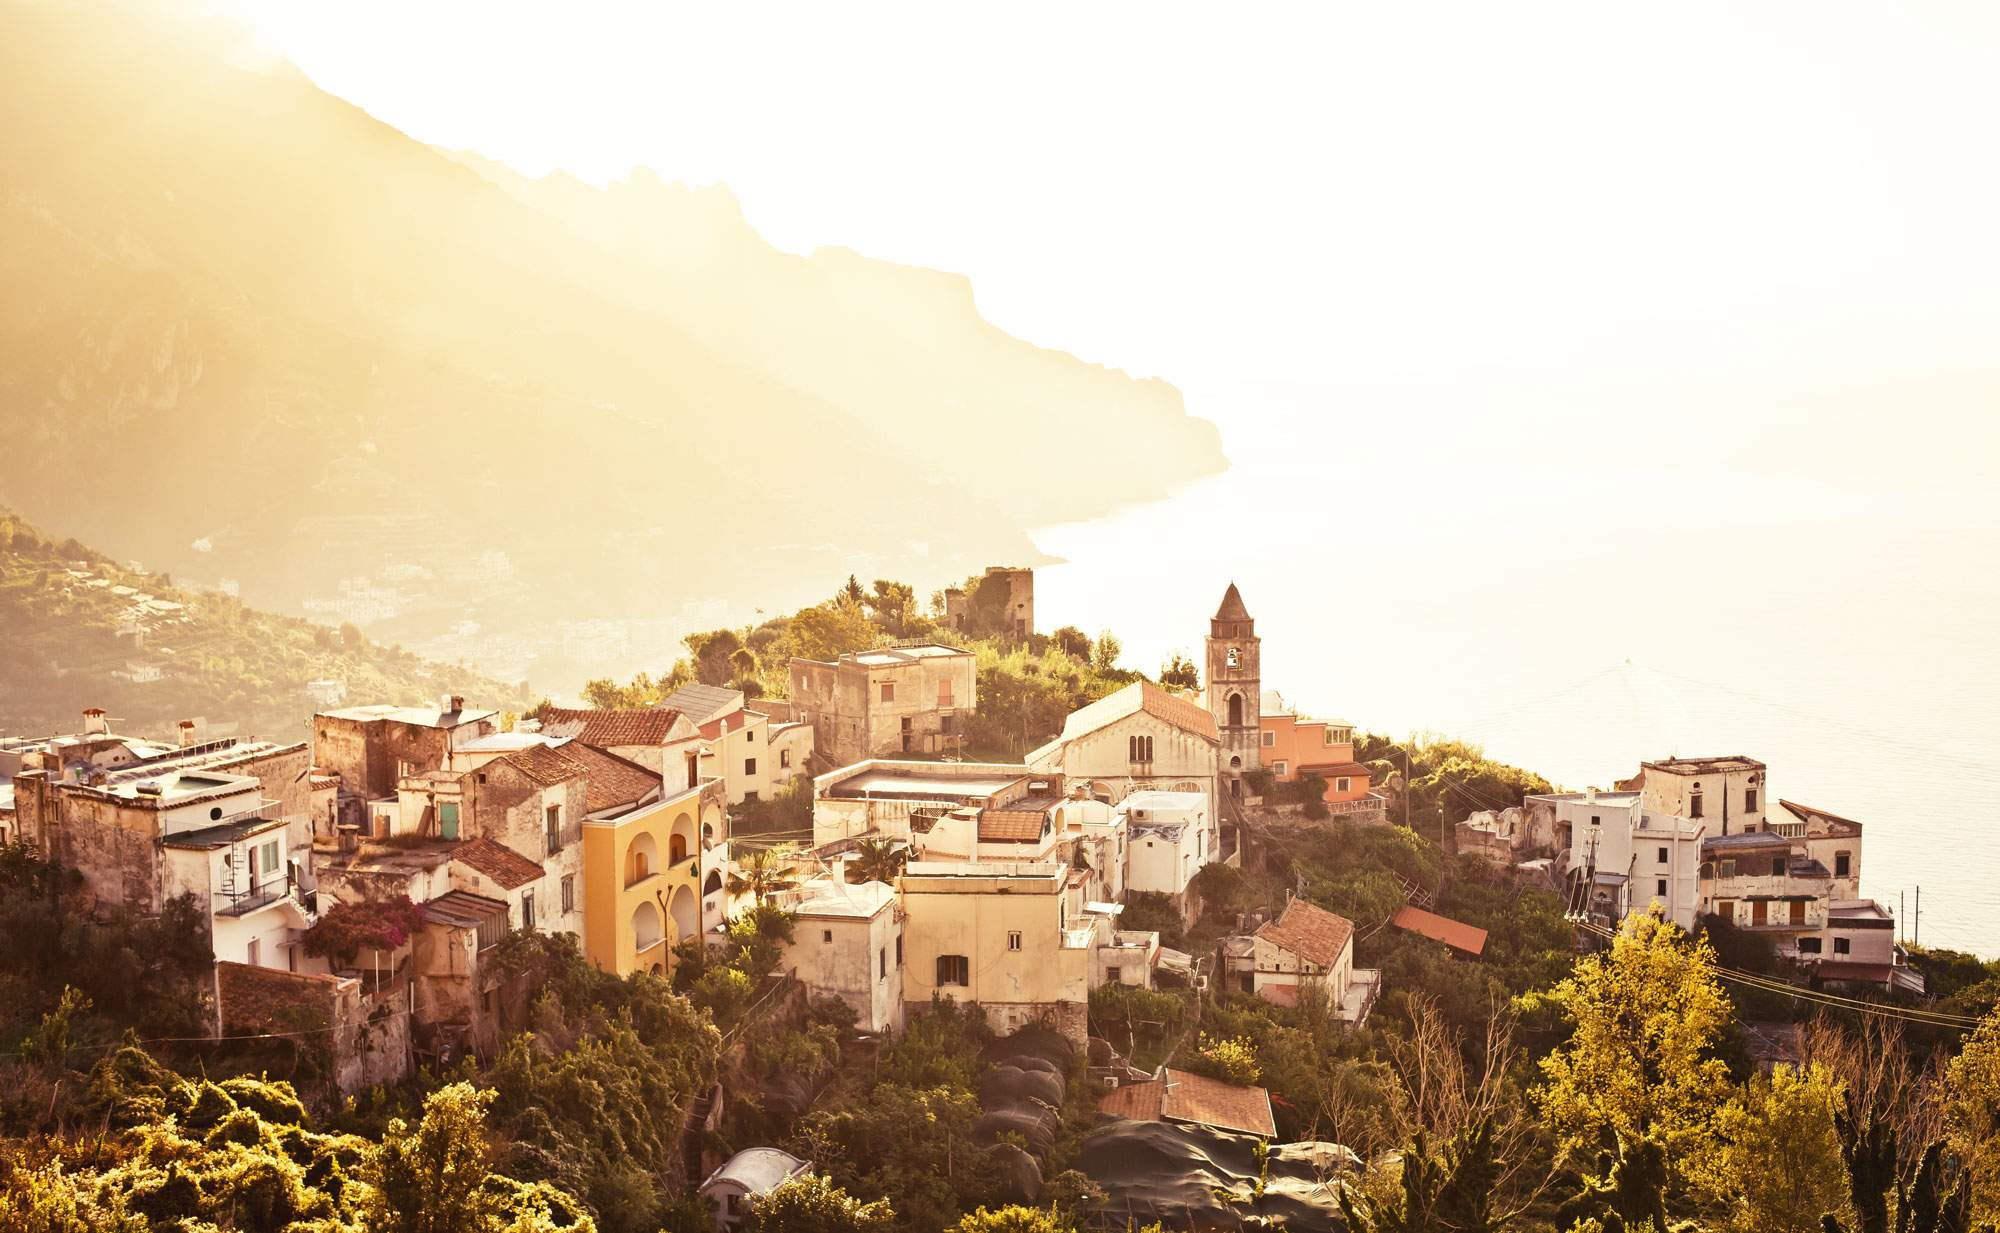 ravello-italy-amalfi-coast-sunset-town-travel-view